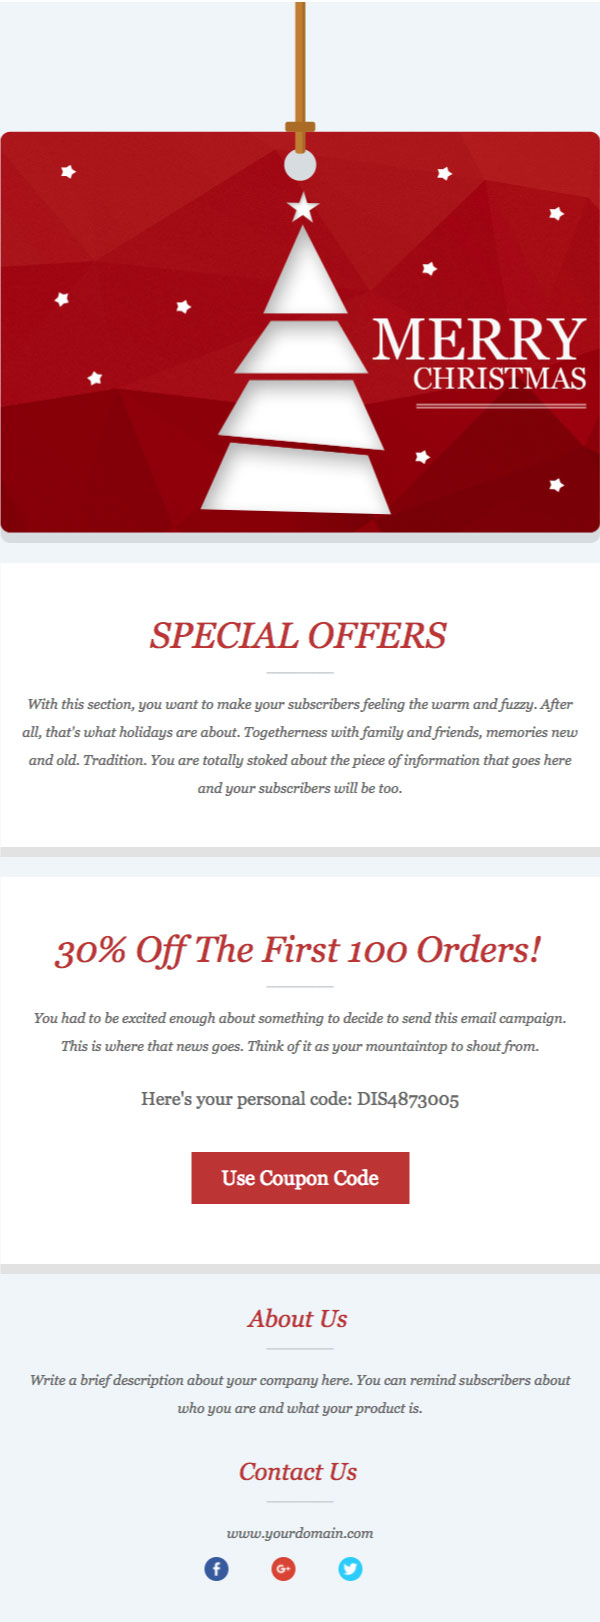 Free HTML Email Templates From Benchmark Email - Special offer email template